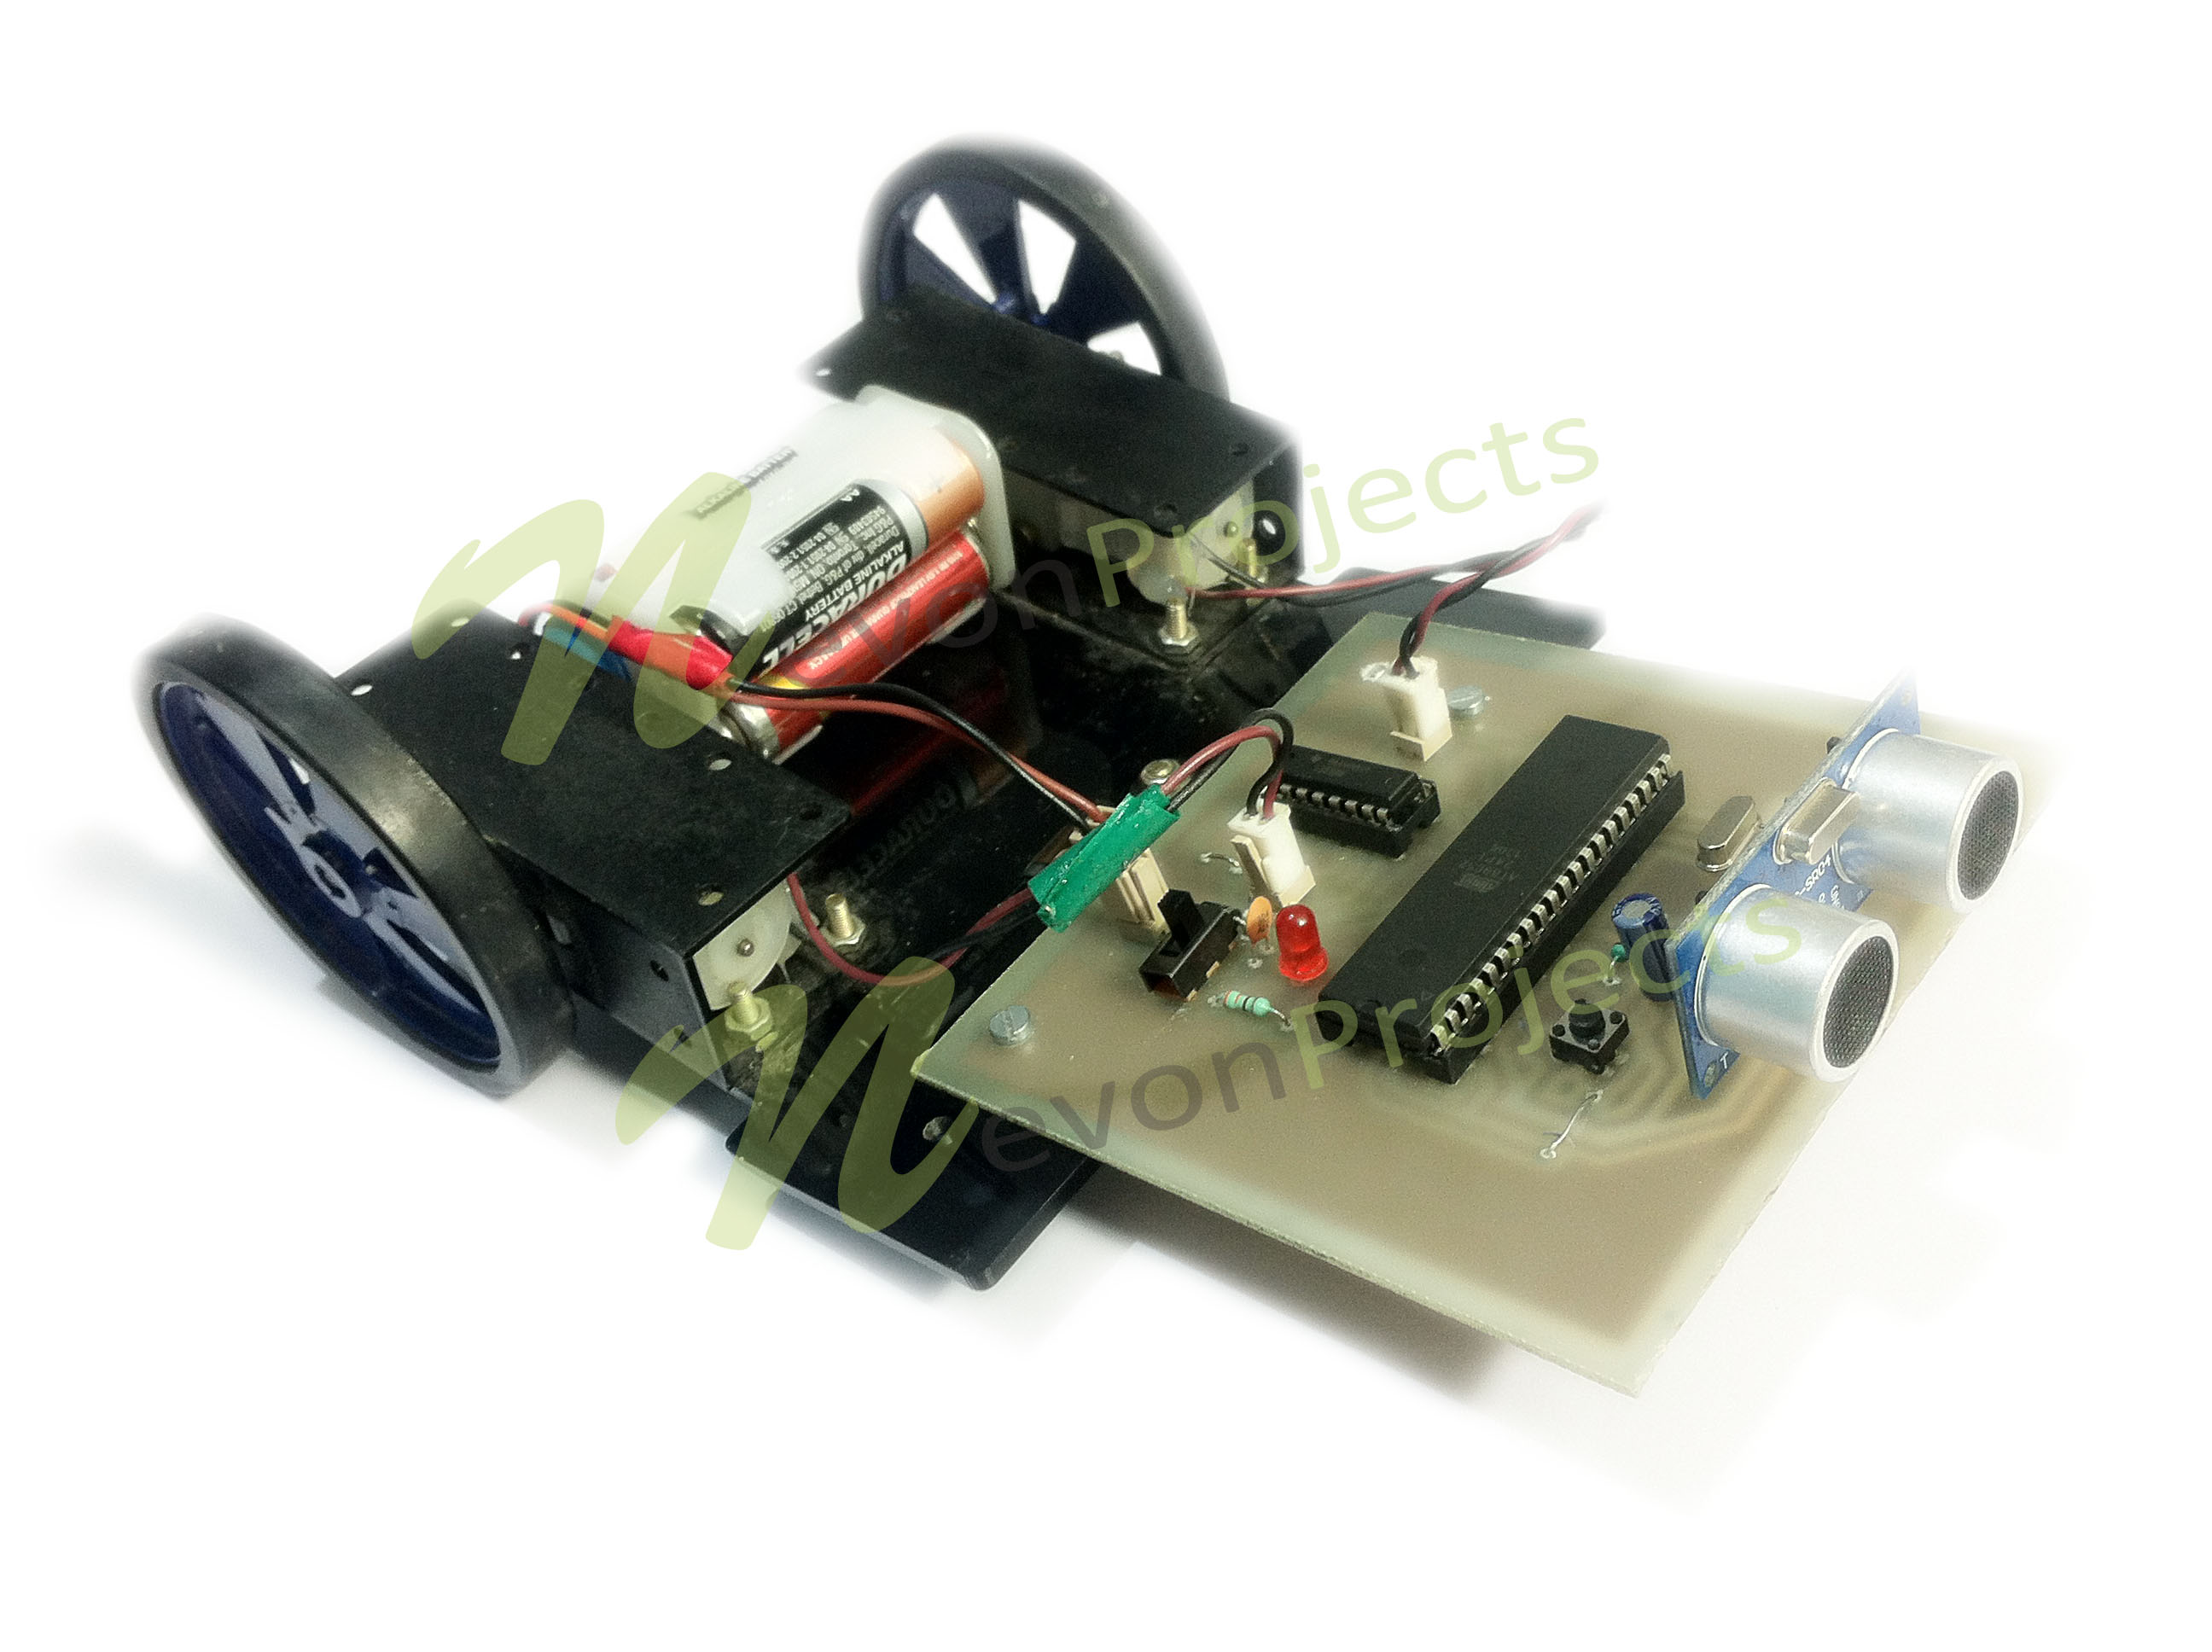 Obstacle Avoidance Robotic Vehicle Project Nevonprojects Transformer Diagram Arduino Robot Circuit